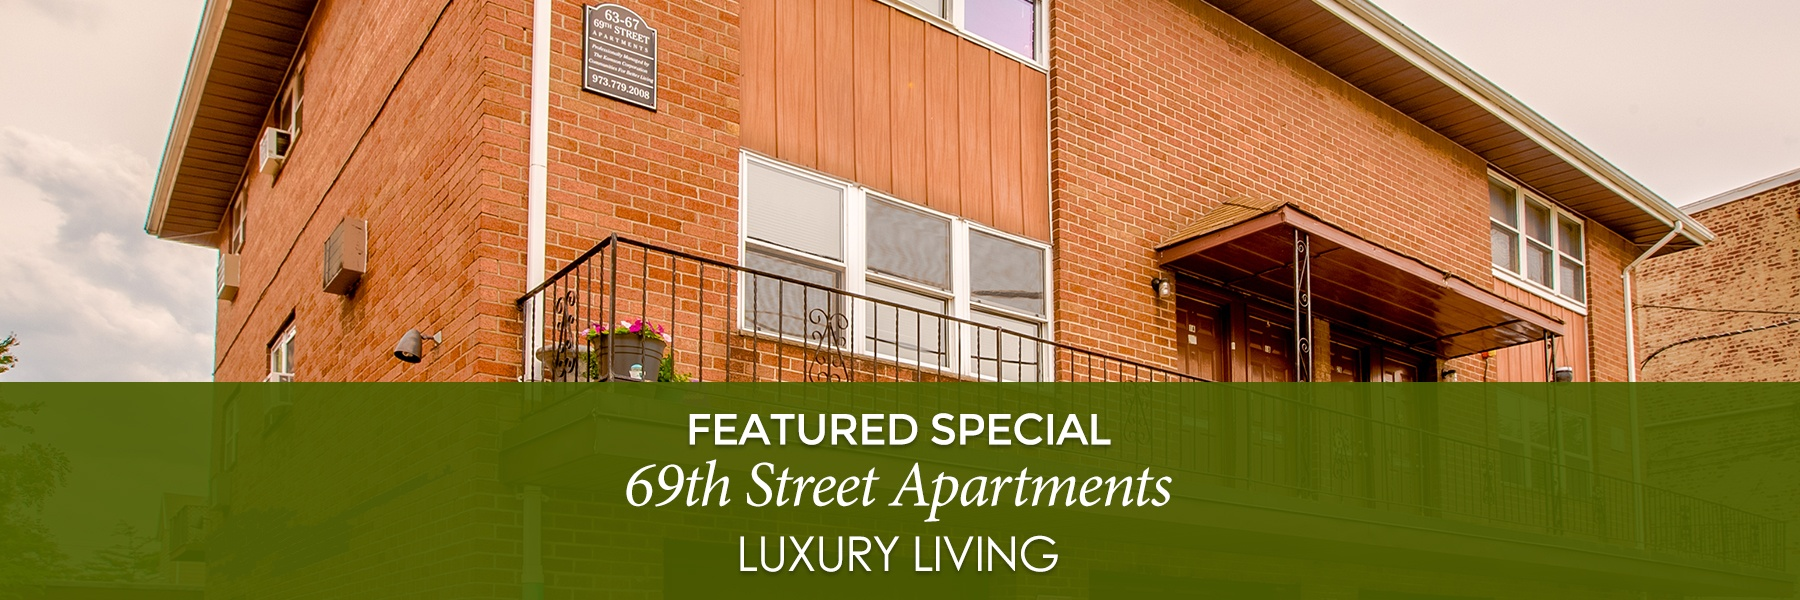 69th Street Apartments For Rent in Guttenberg, NJ Featured Specials